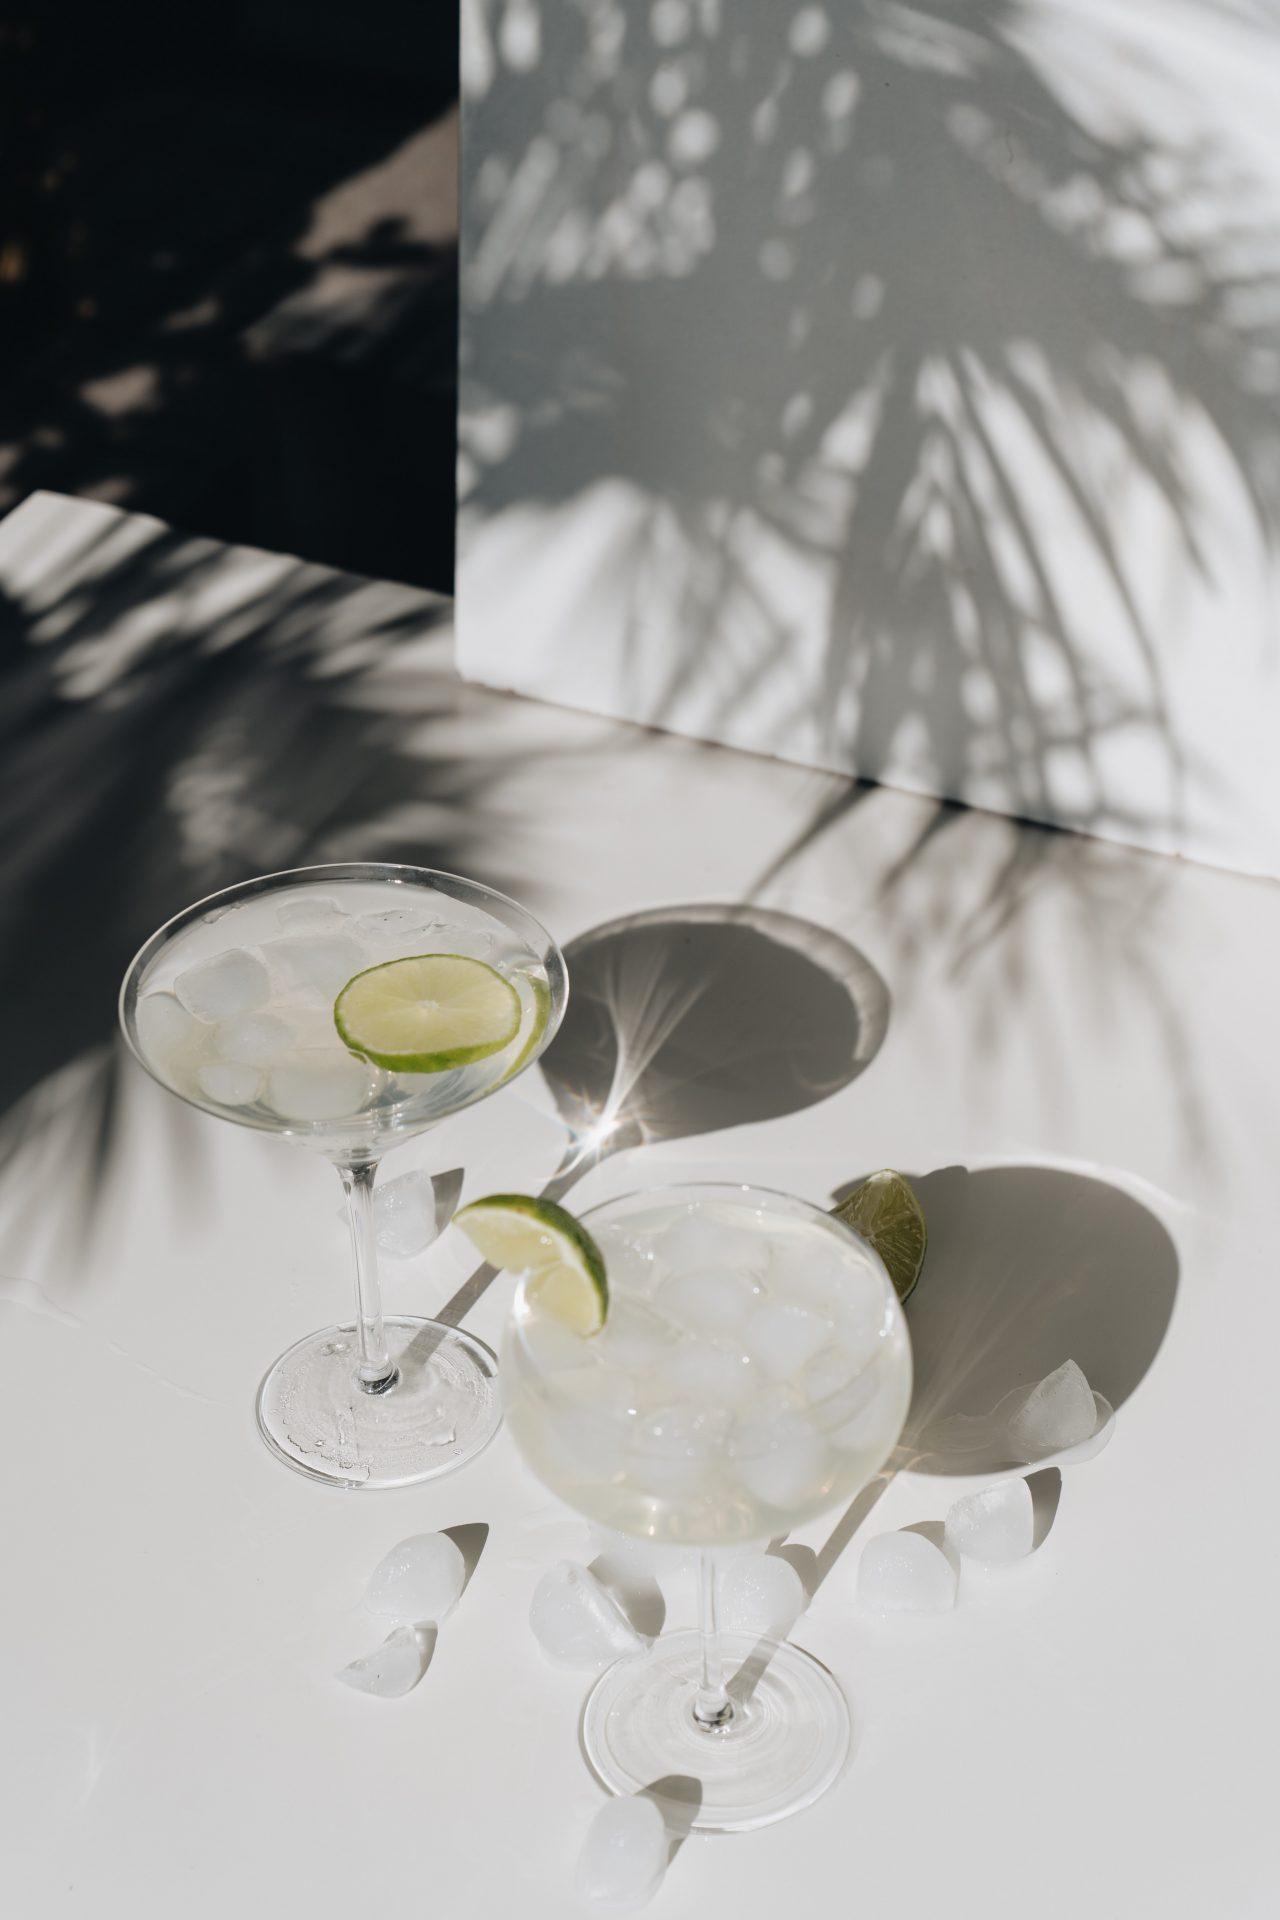 photo-of-sliced-lime-on-cocktail-glass-zoom-happy-hour-recipe-scaled